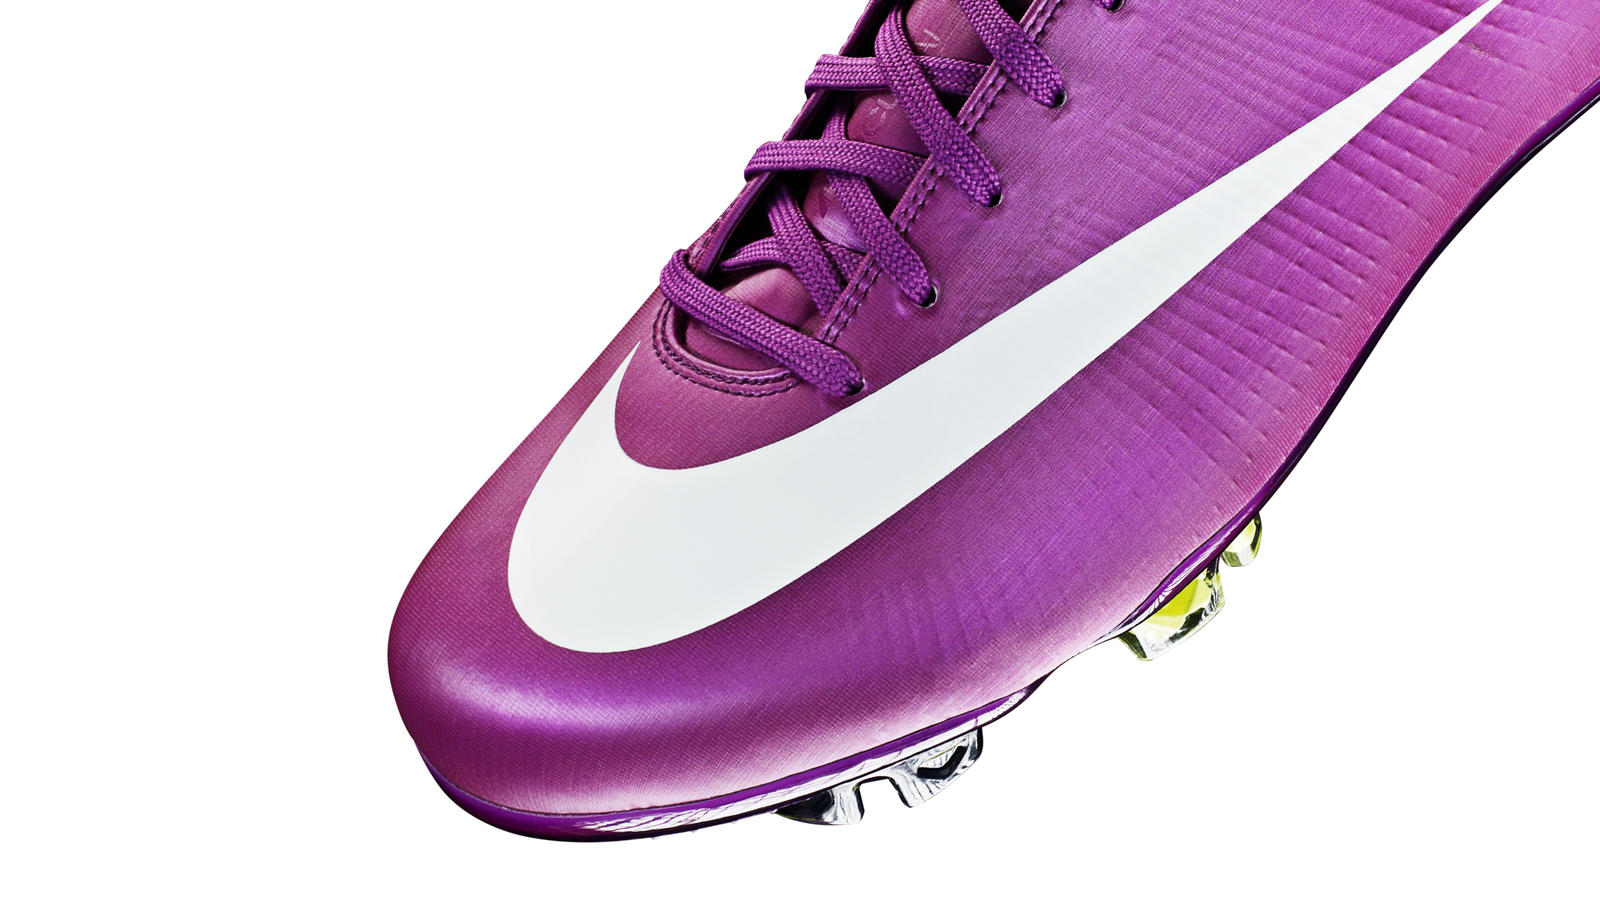 M27_NIKE_MERCURIAL 036_5 copy